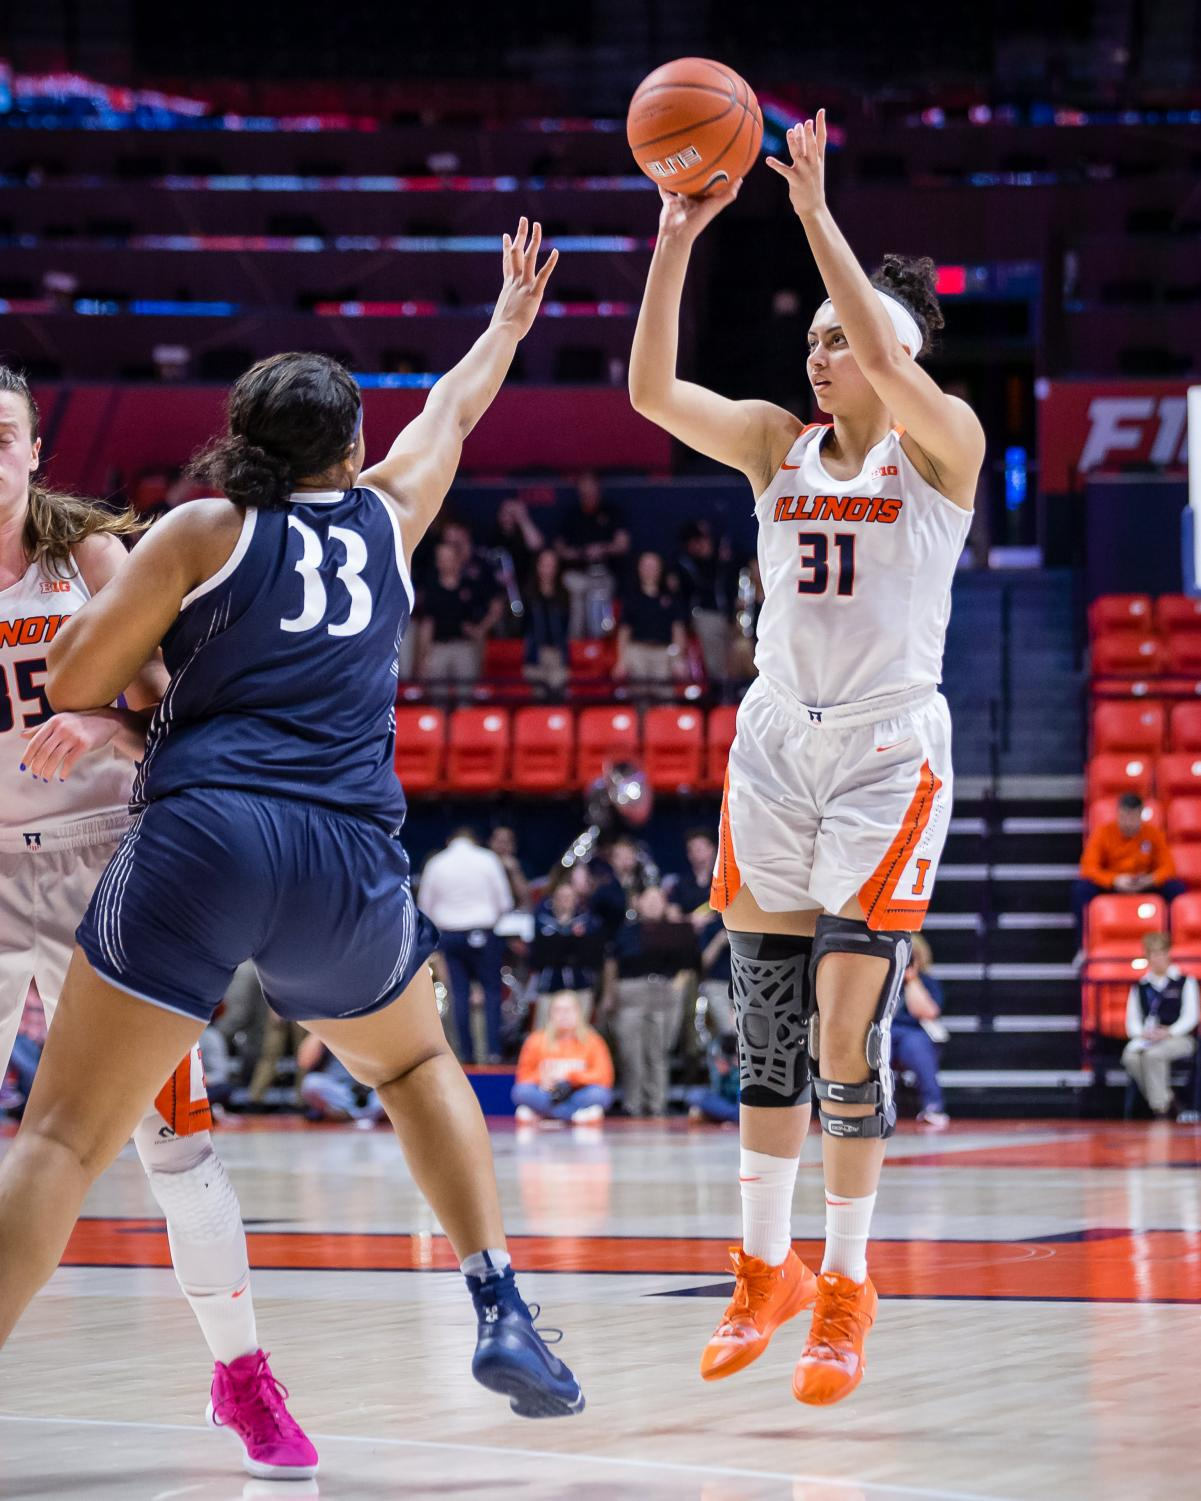 Illinois forward Sarah Shewan shoots a three-pointer during the game against Penn State at the State Farm Center on Feb. 24. The Illini lost 76-65.